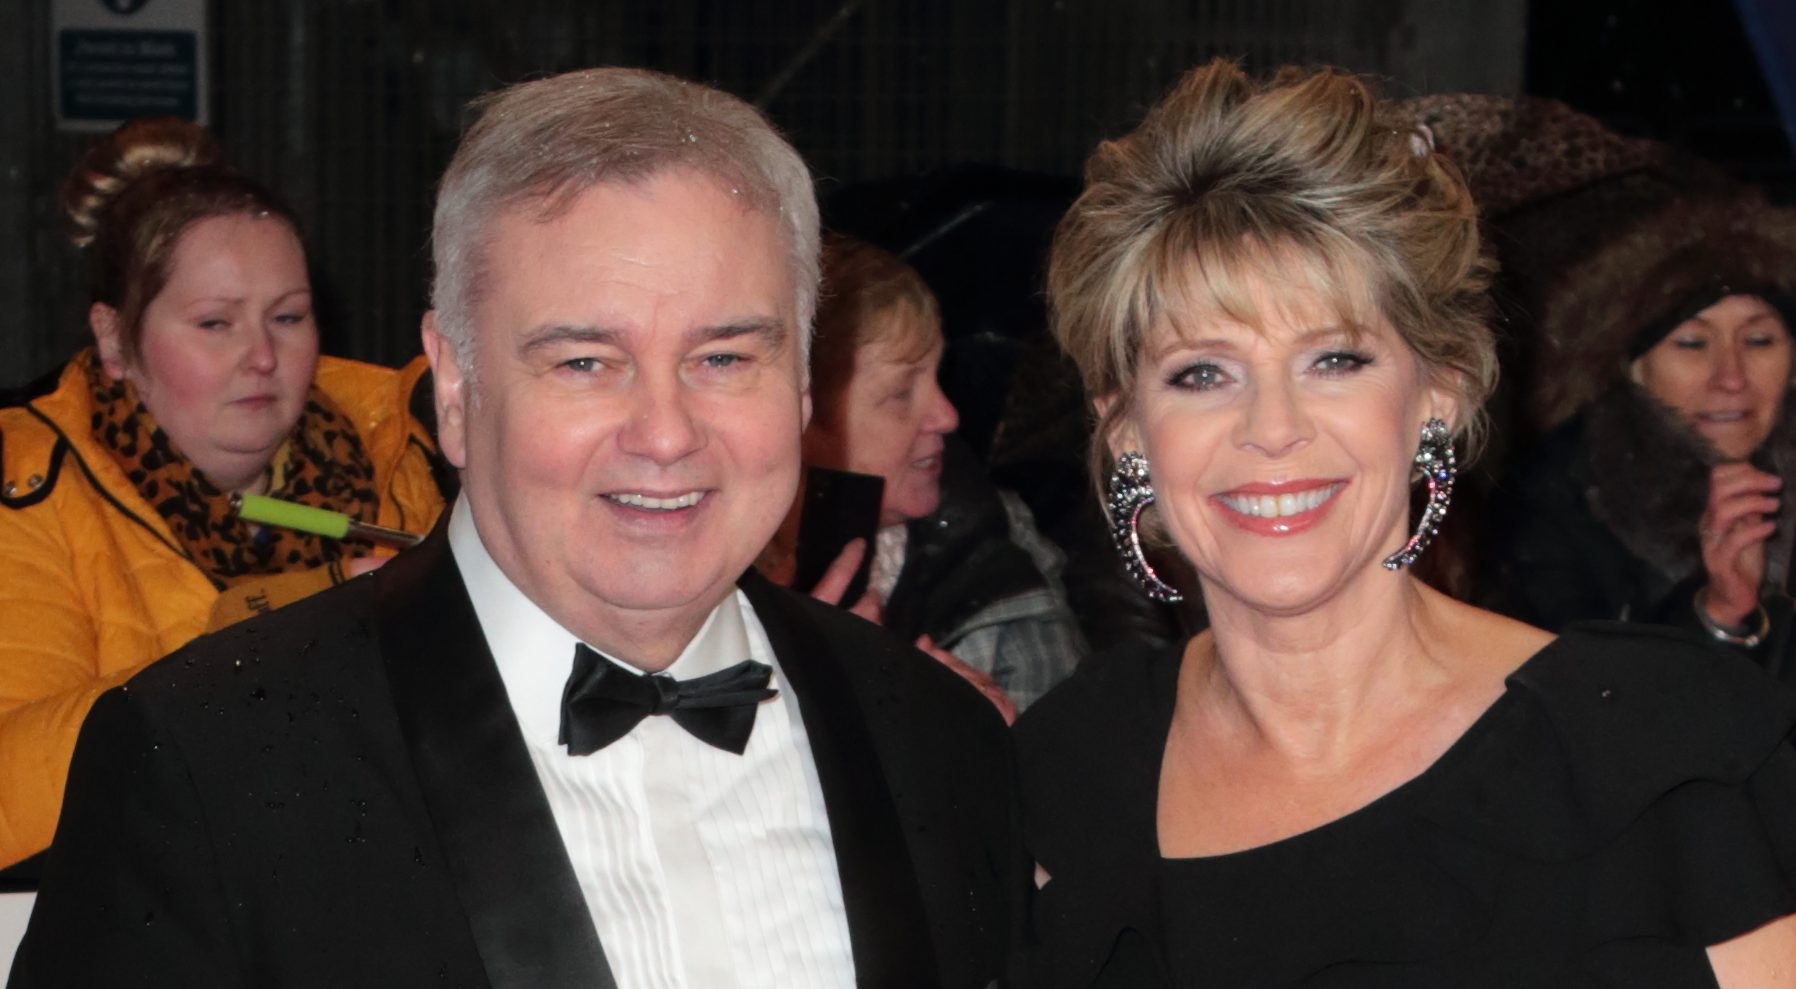 Piers Morgan apologises to Ruth Langsford for missing Eamonn Holmes' 60th birthday party